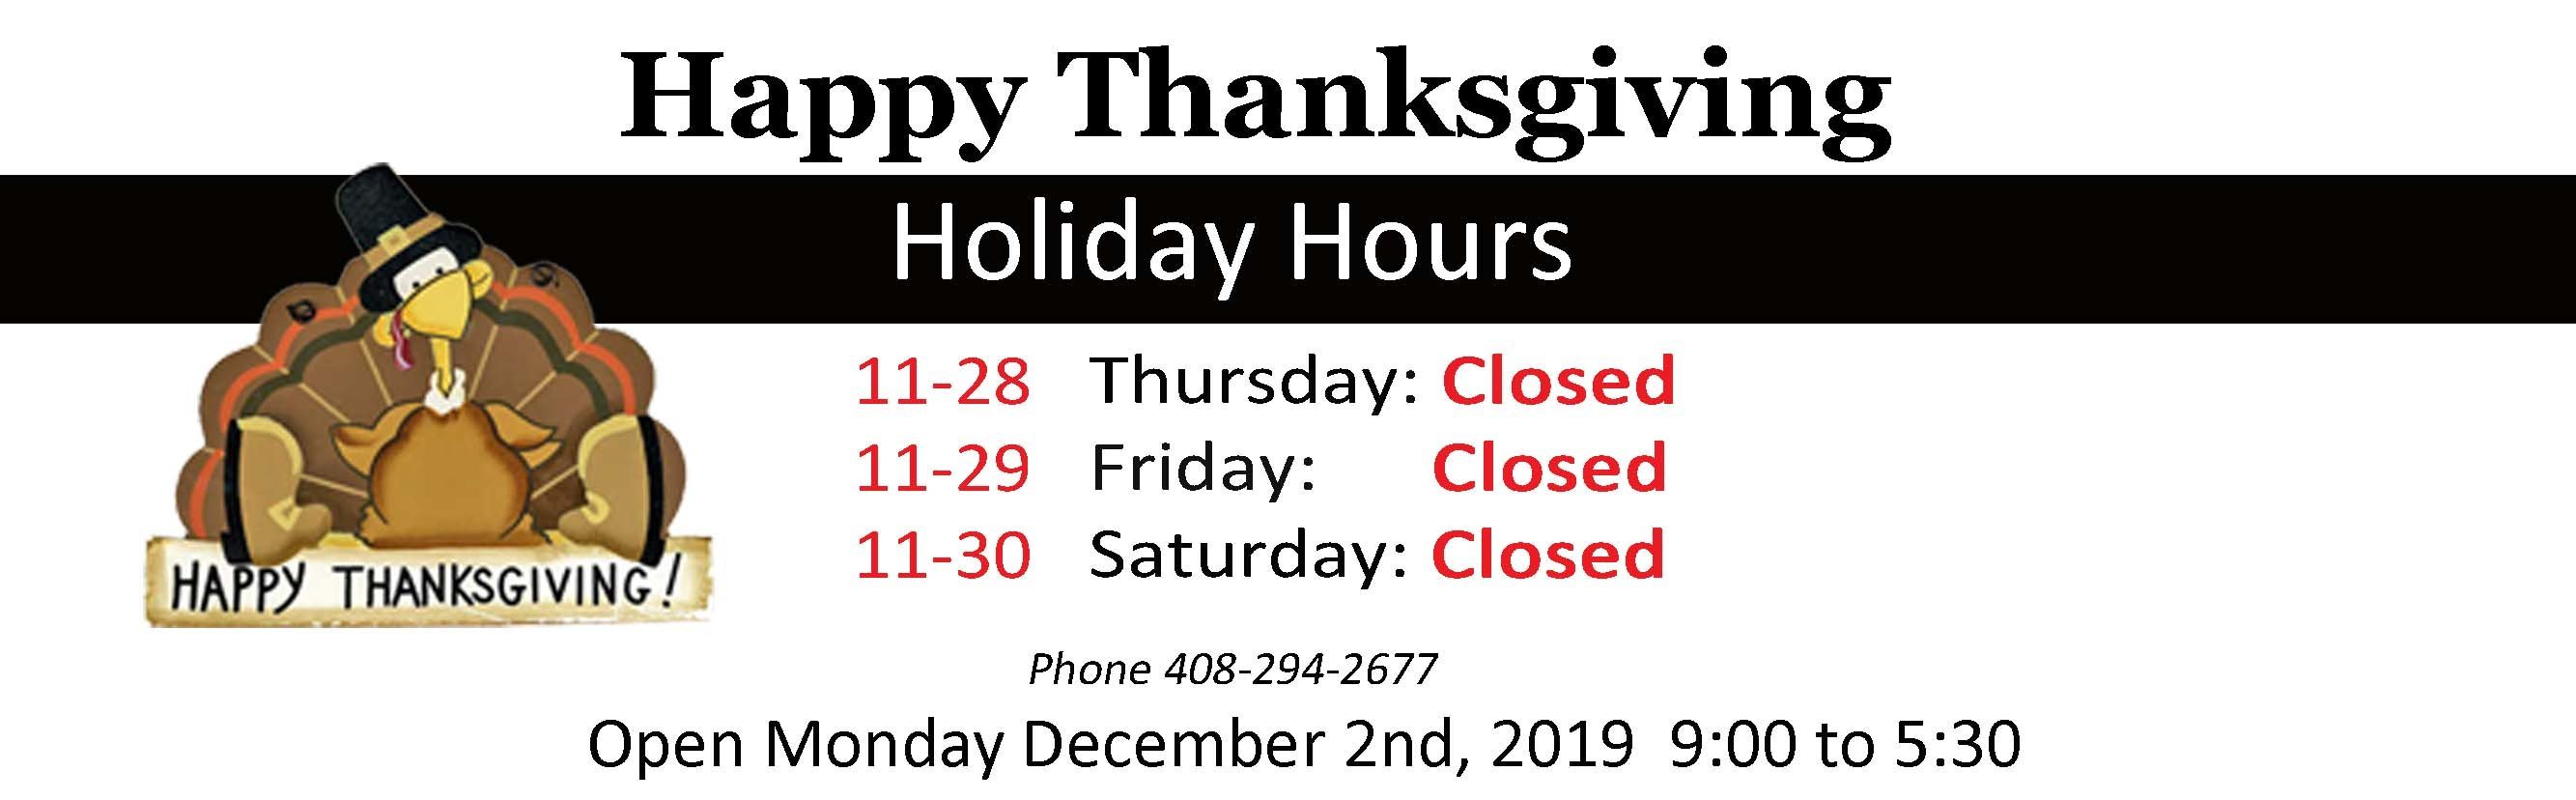 Closed Thanksgiving 2018